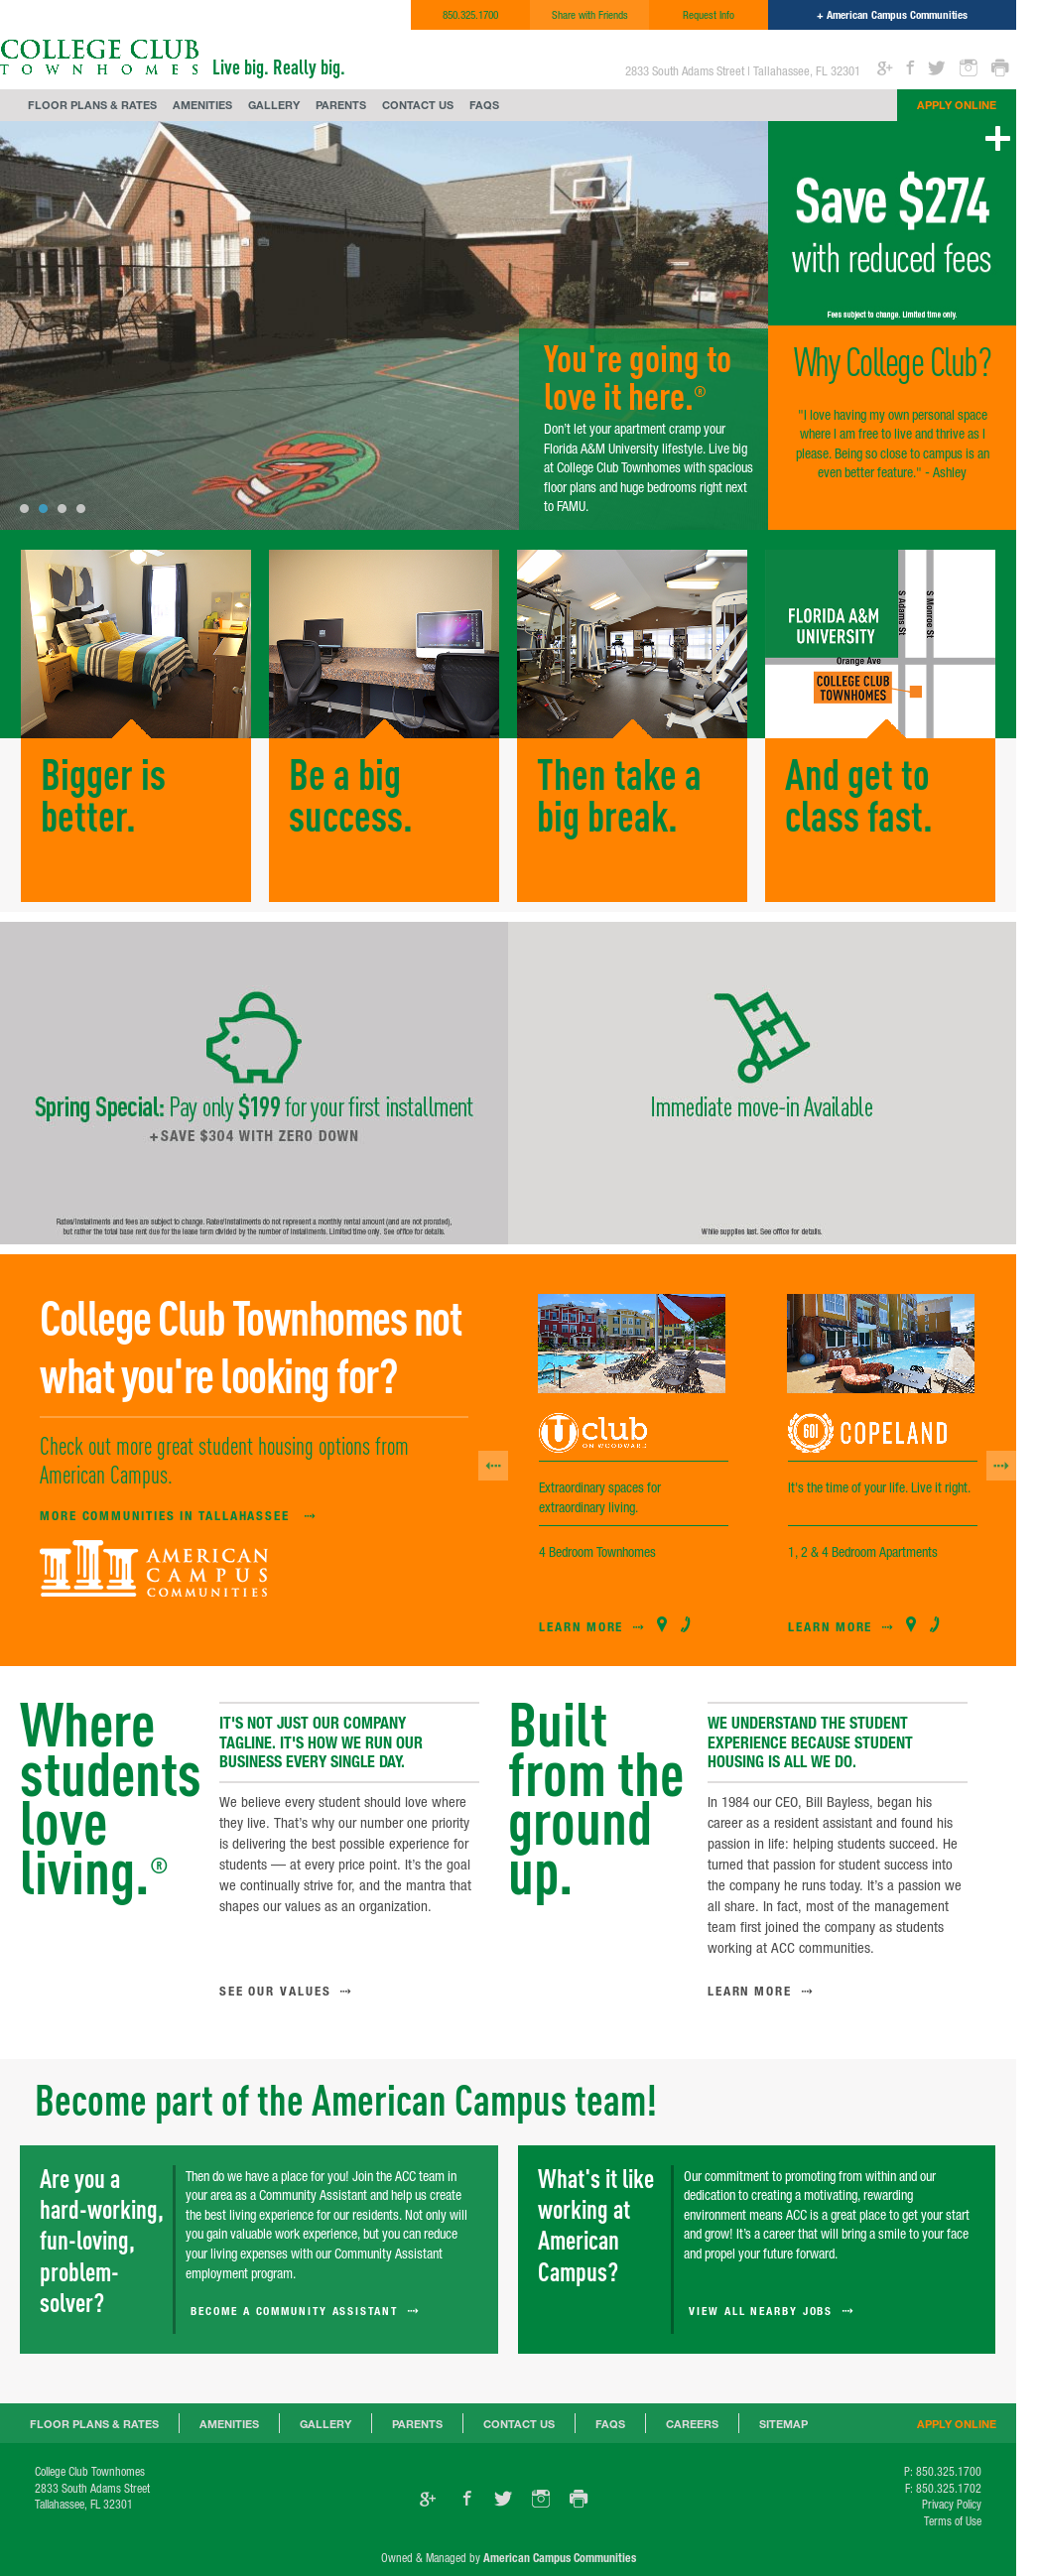 College Club Townhomes Competitors, Revenue and Employees